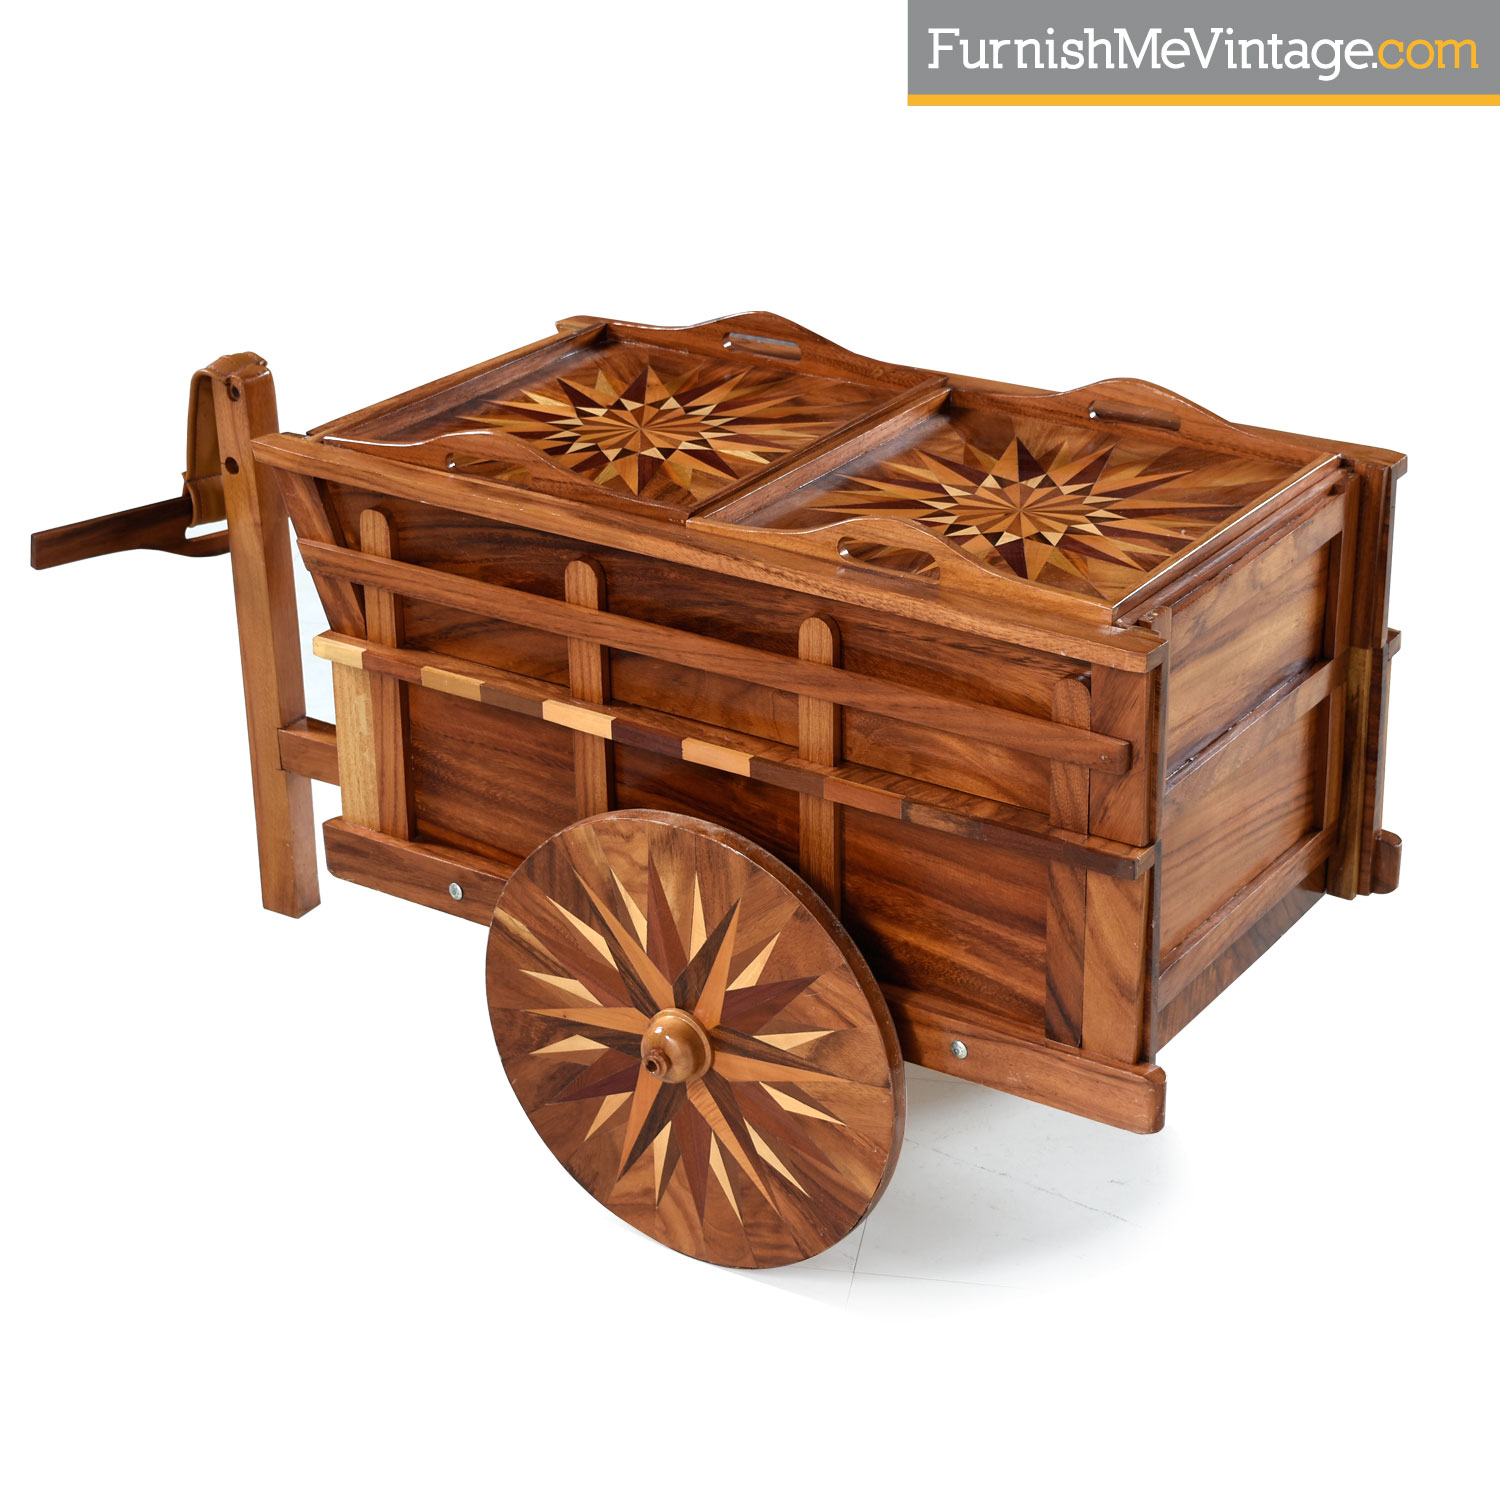 Handcrafted Wagon Bar Cart With Intricate Wood Inlay Marquetry